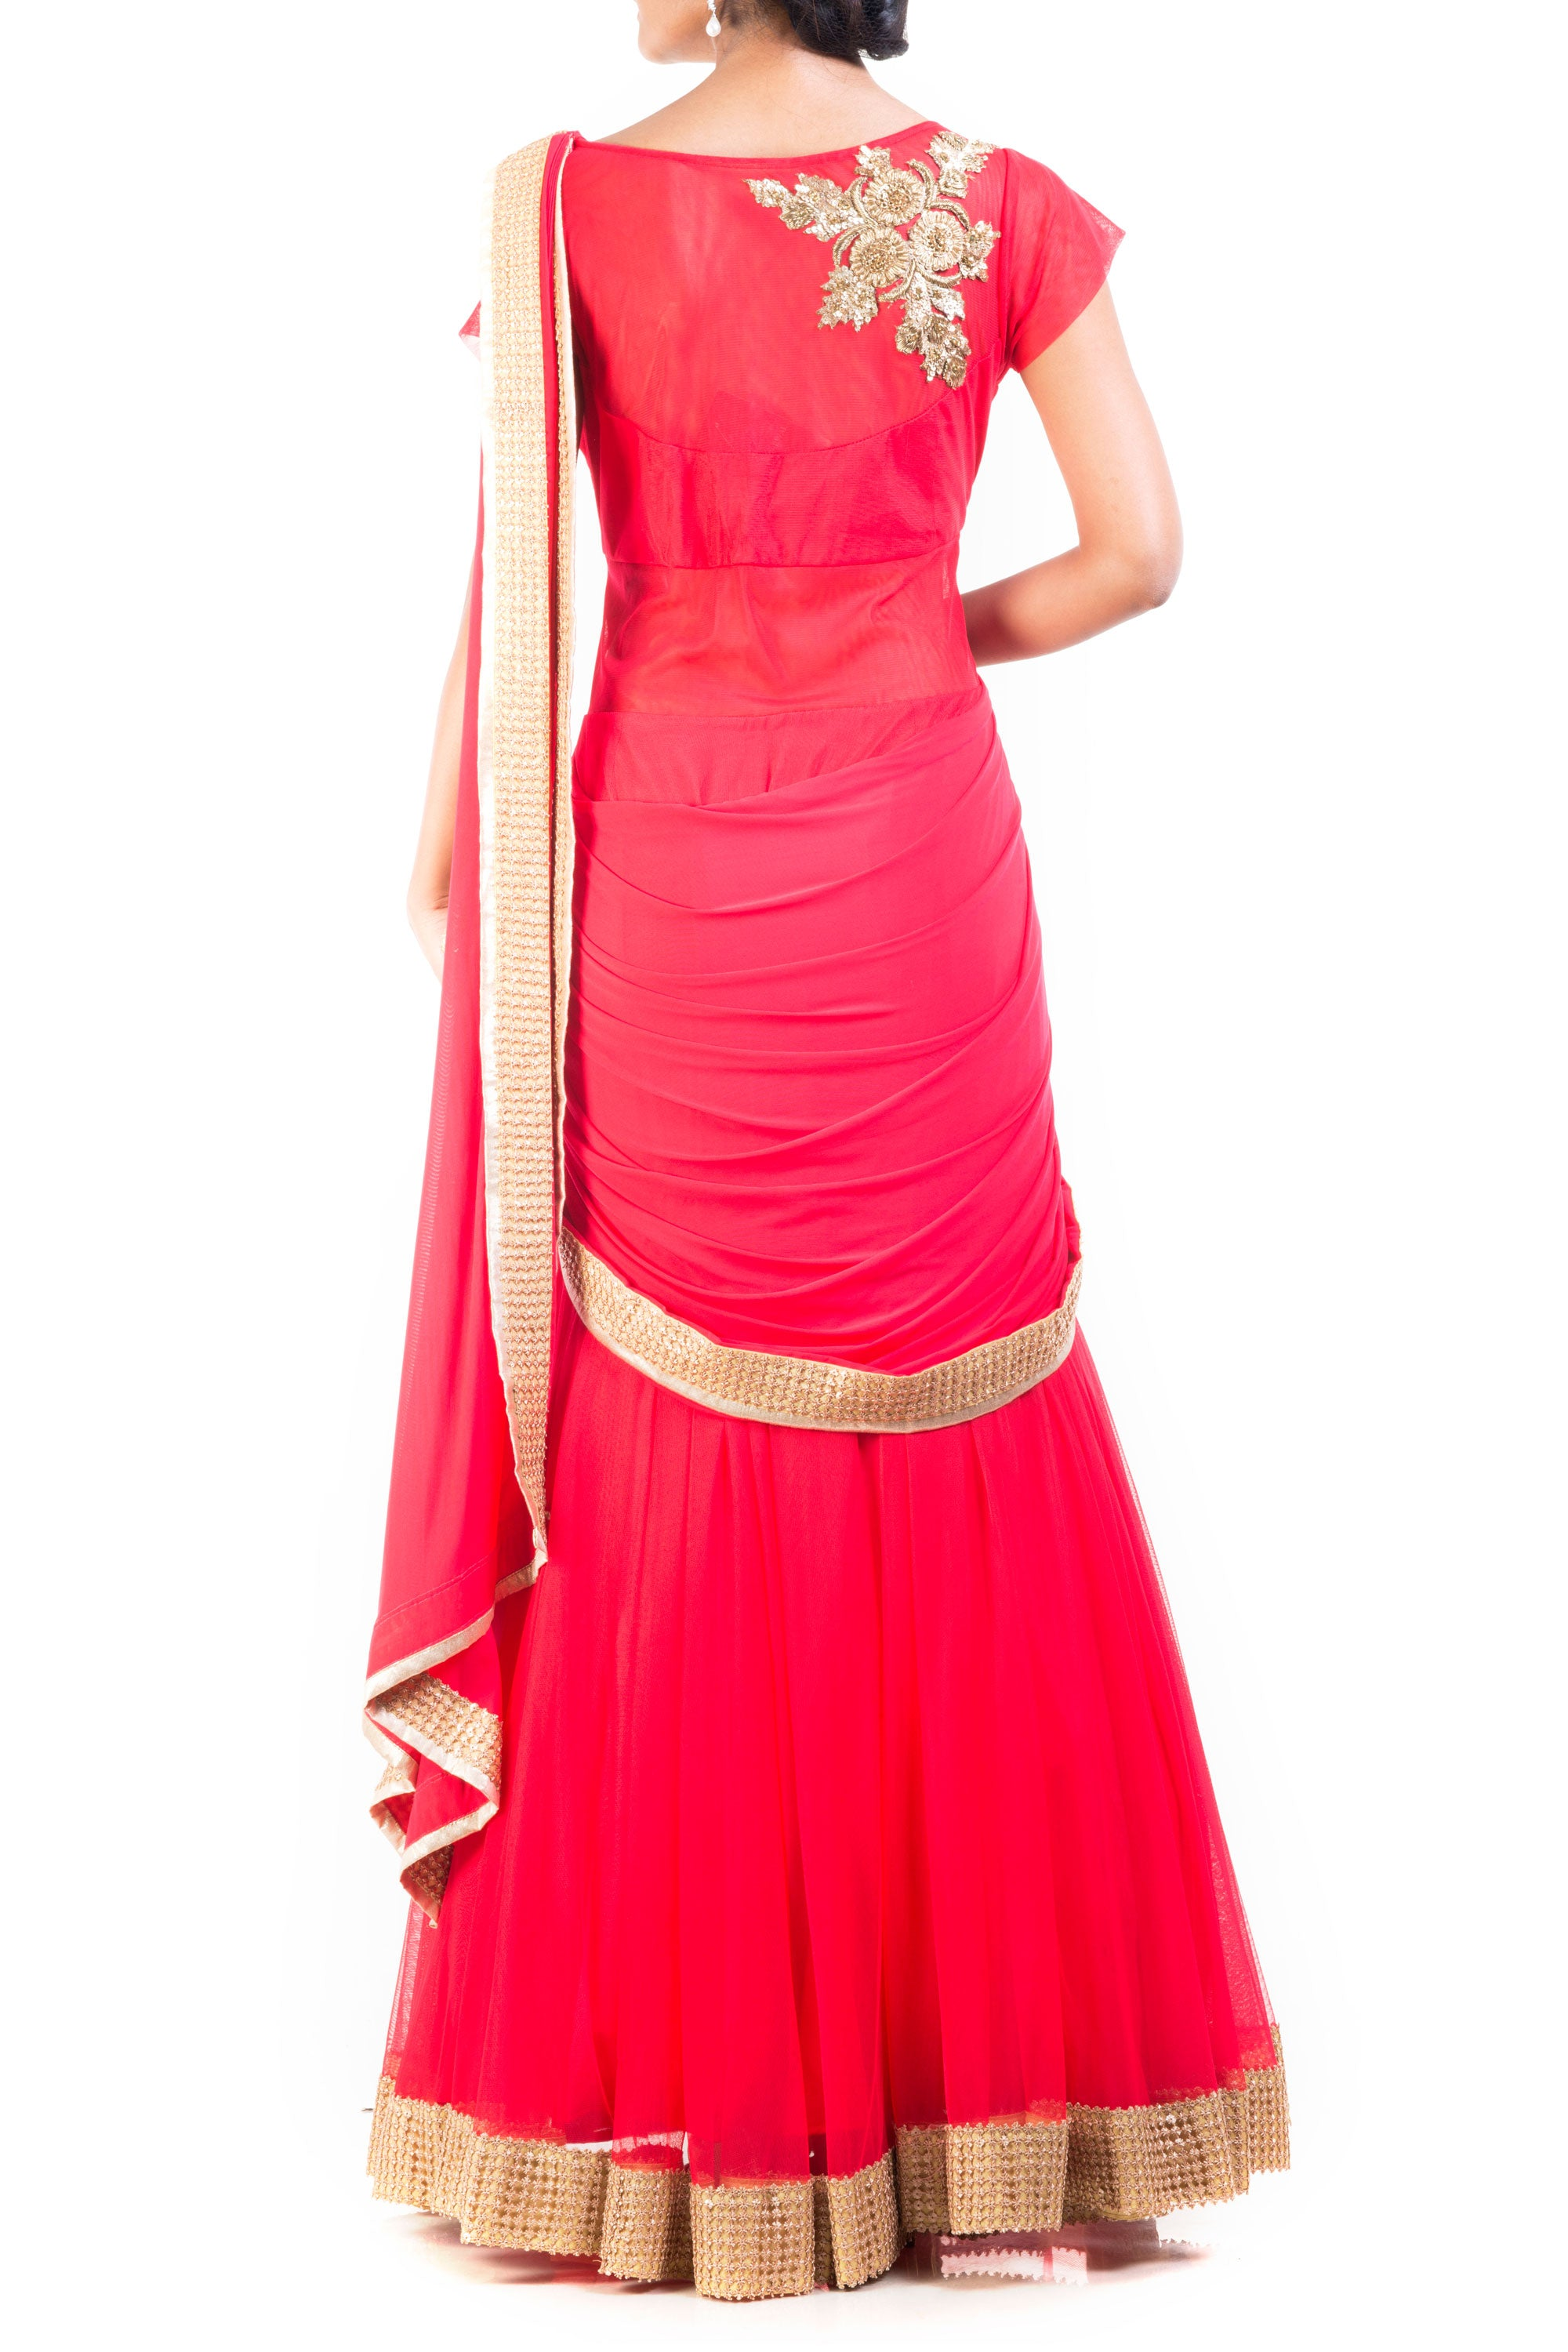 Tomato Coloured Gown Saree Back